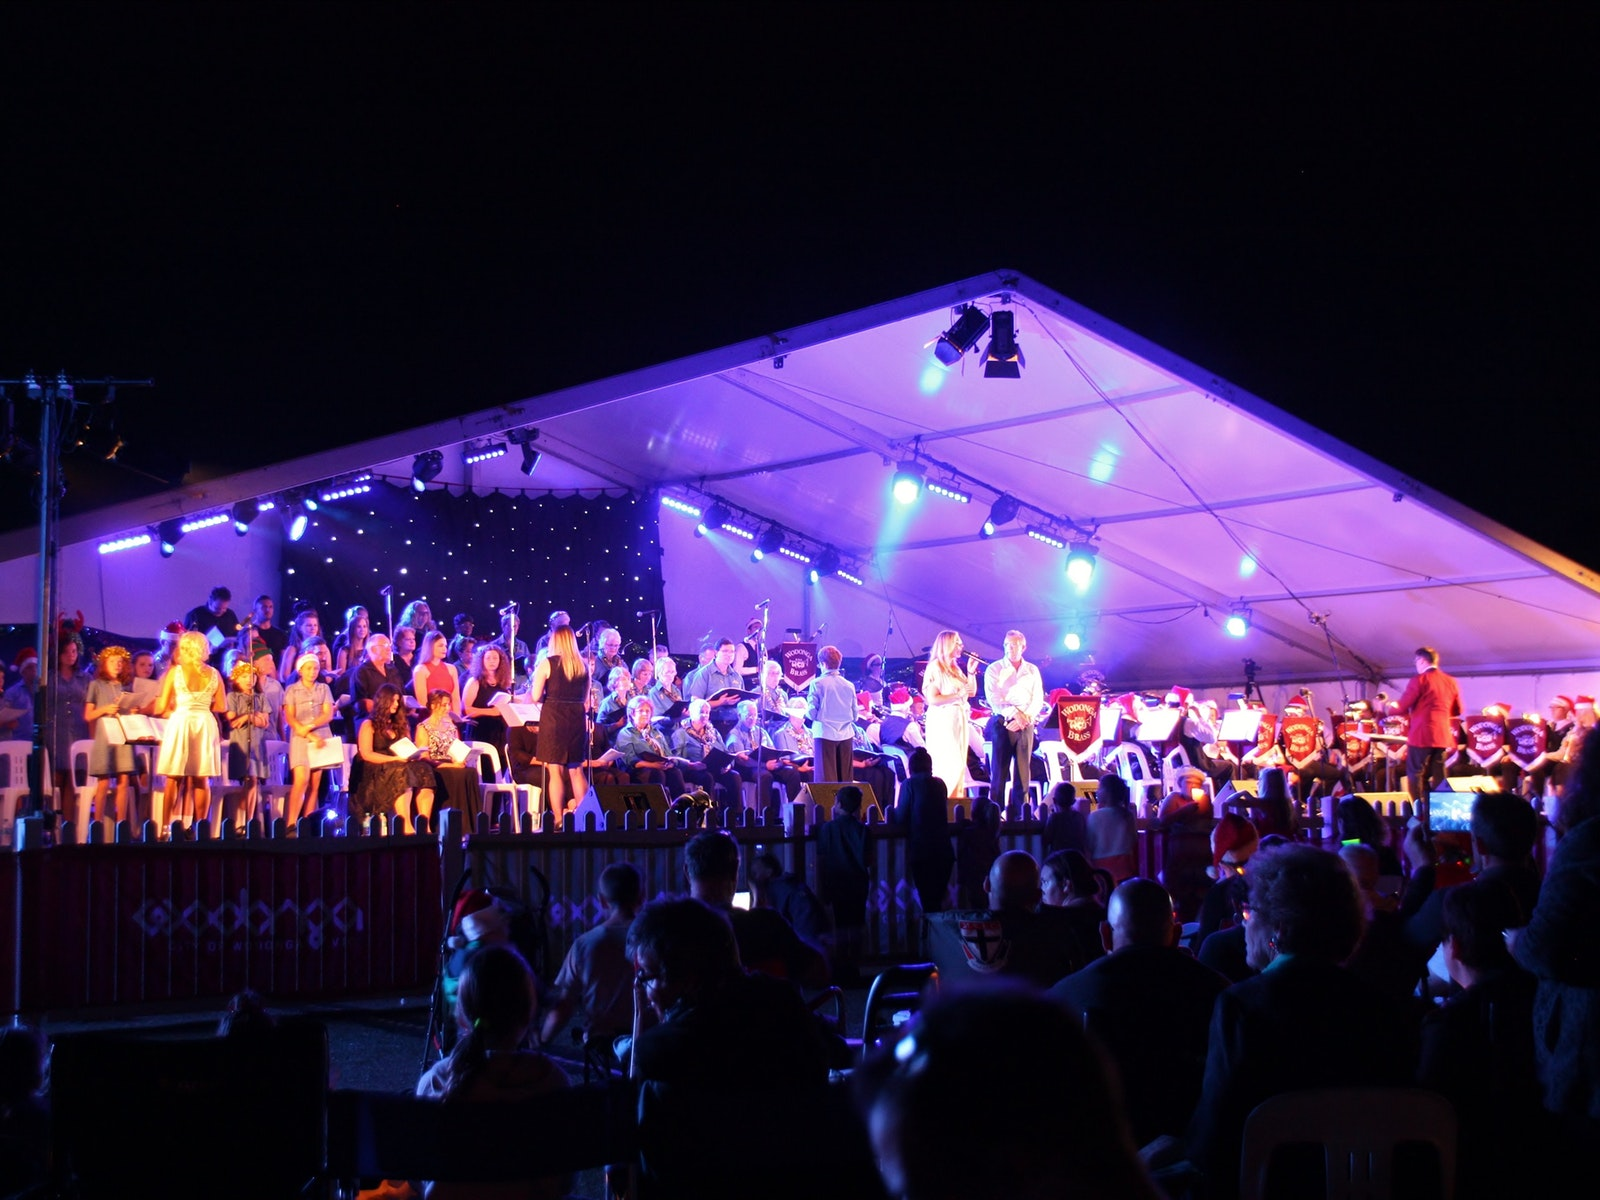 Photo of the stage and layout for Wodonga Carols by Candlight.